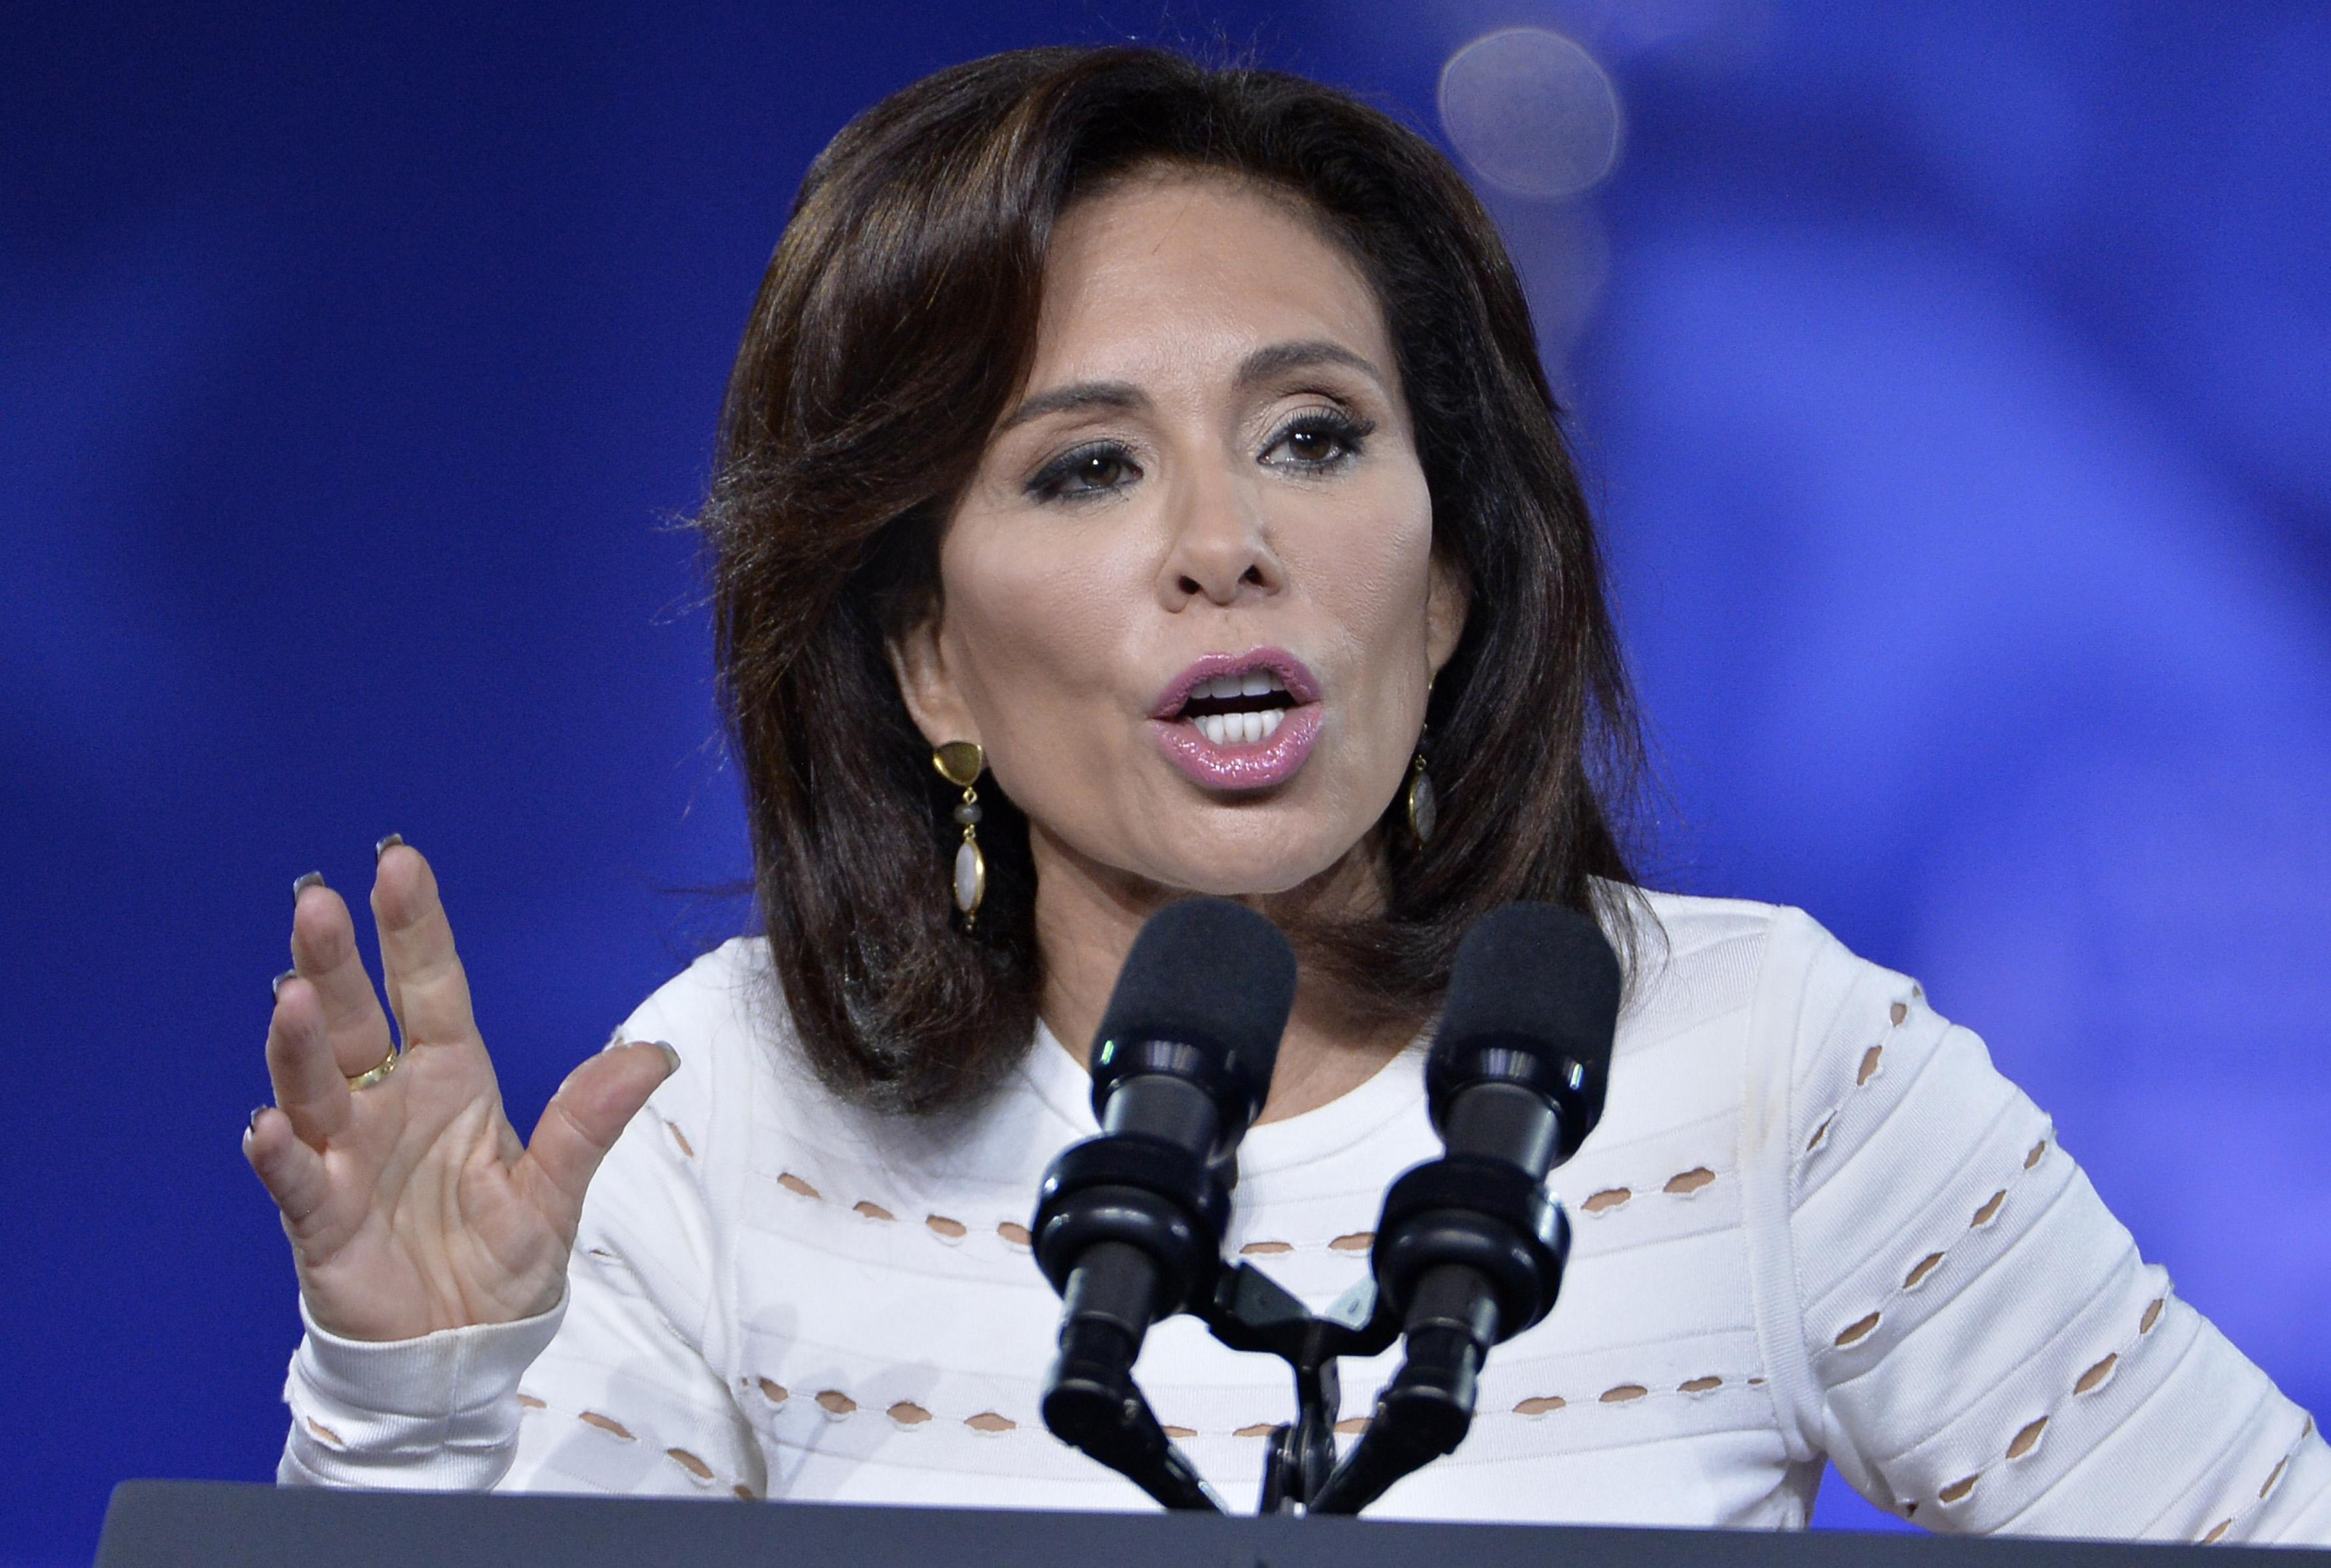 Judge Jeanine Pirro of FOX News Network makes remarks to the Conservative Political Action Conference (CPAC) at National Harbor, Maryland, February 23, 2017.